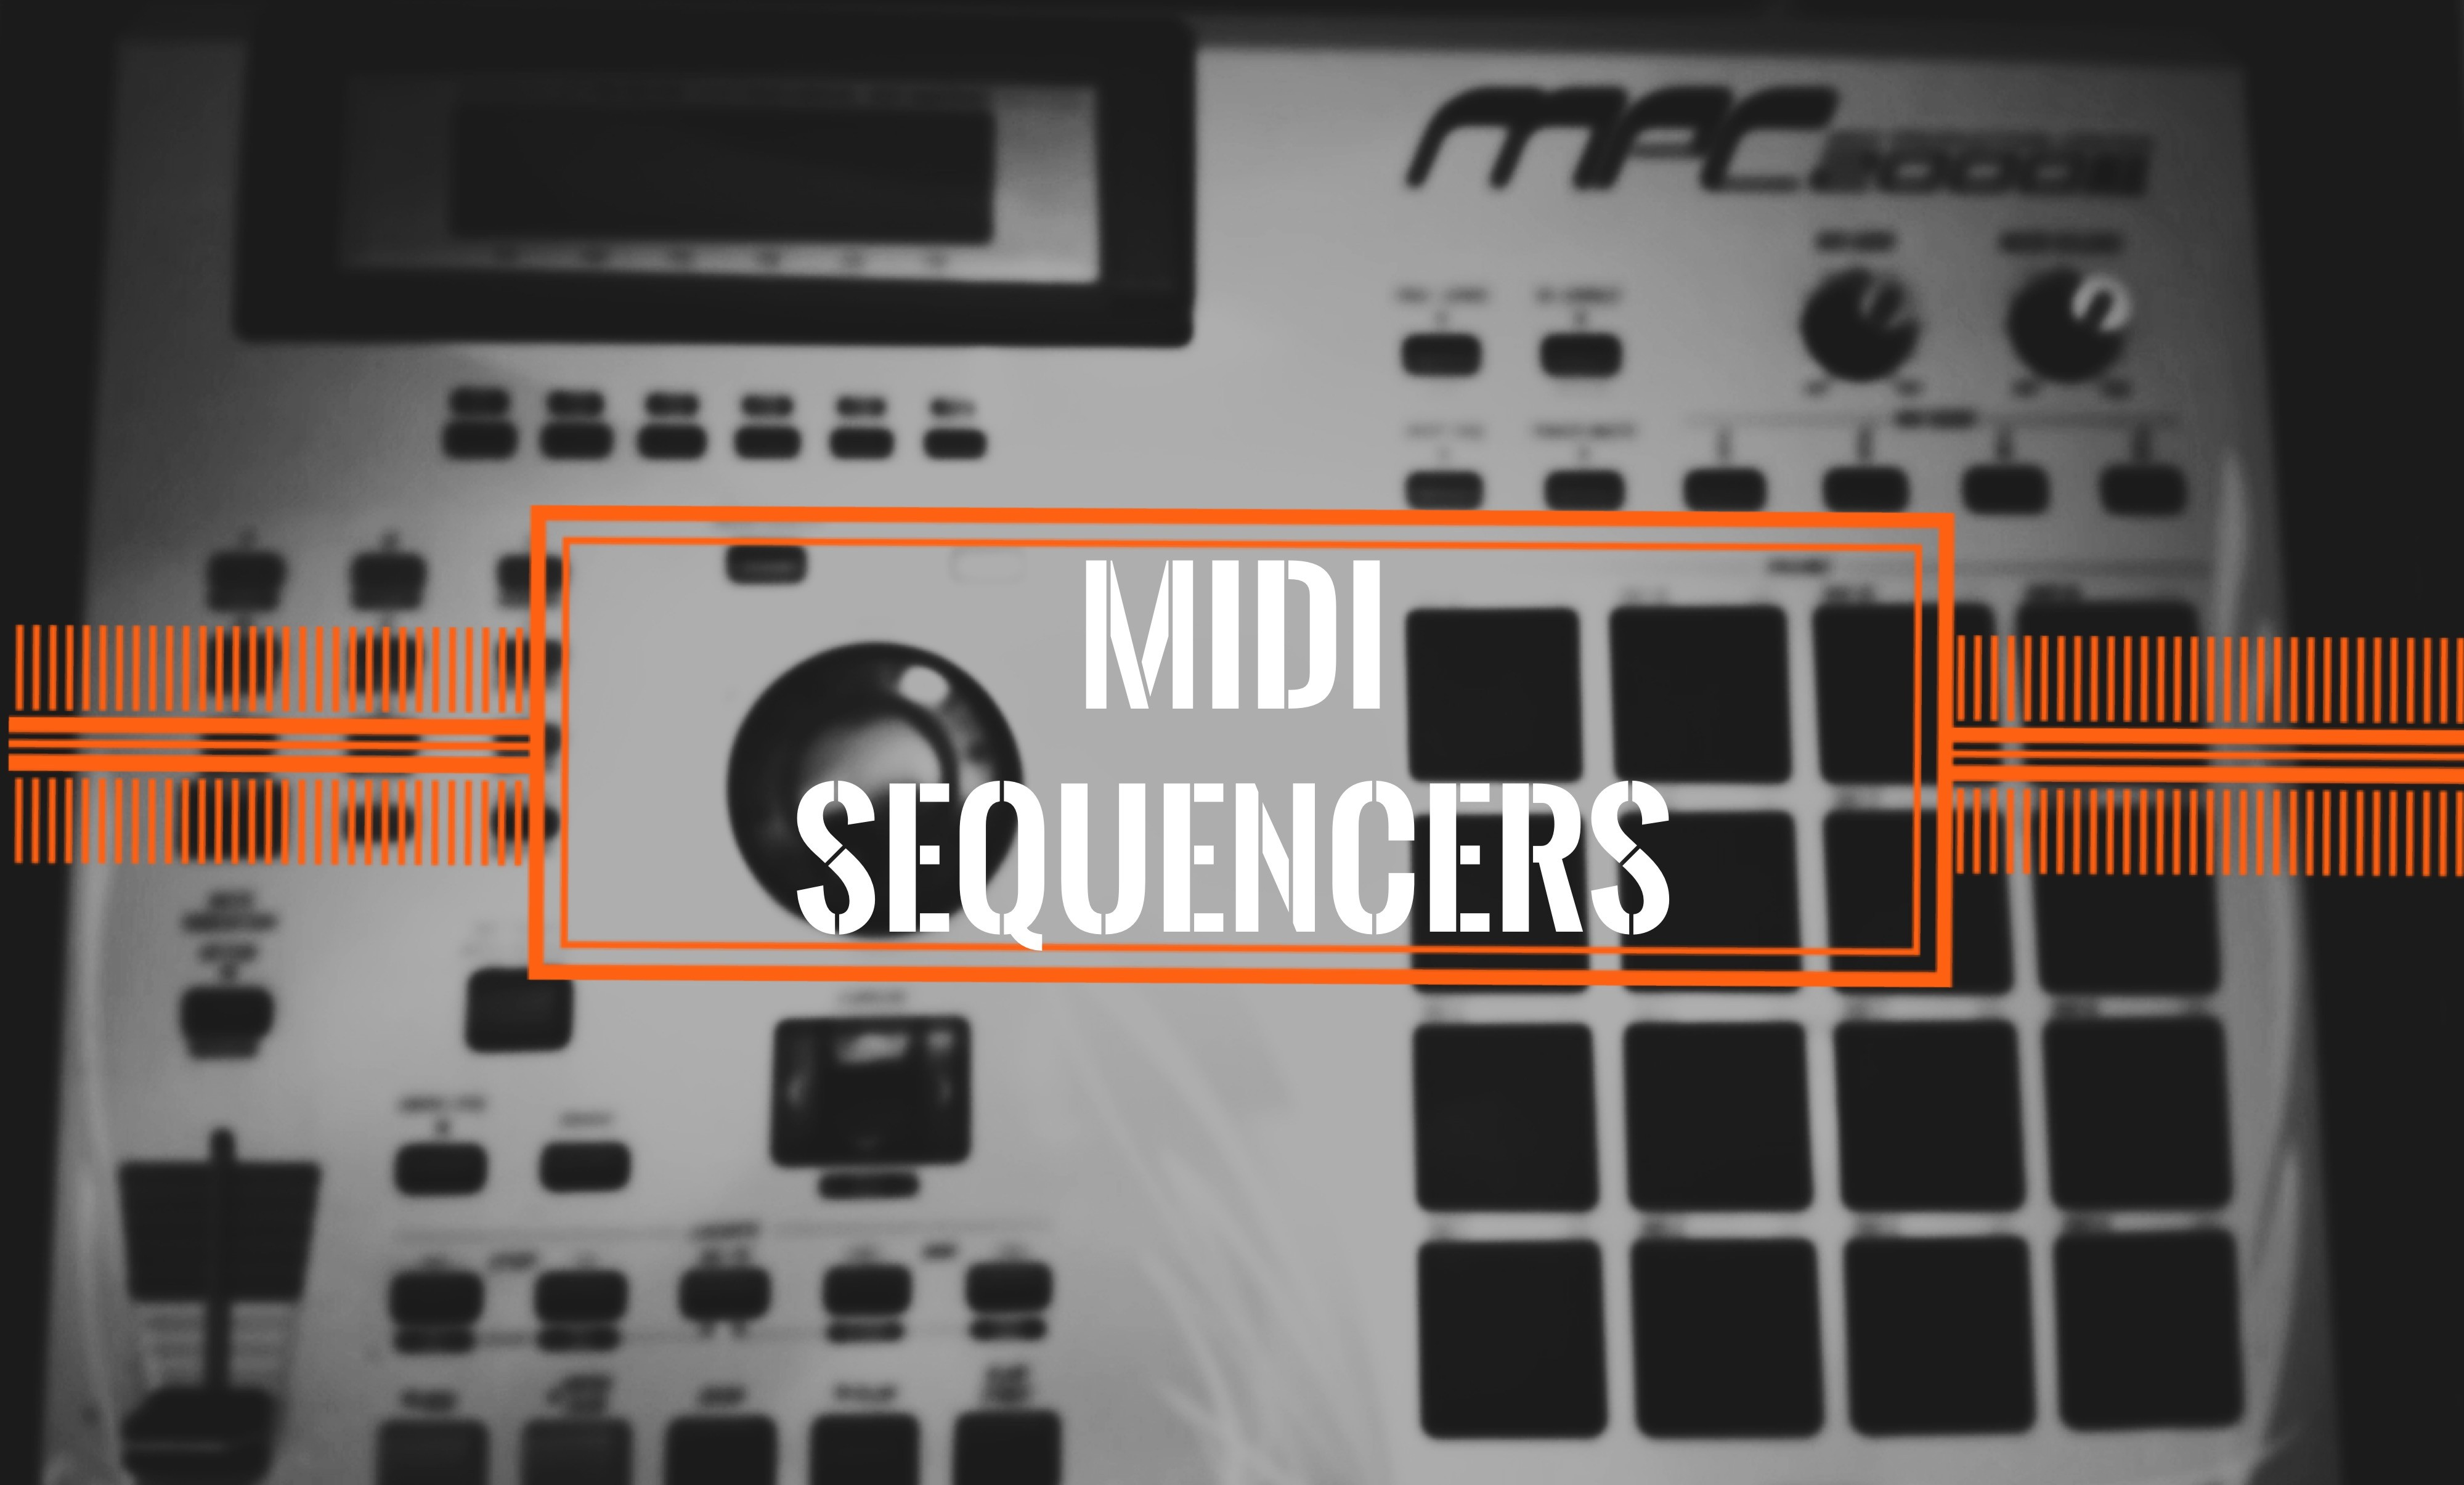 MIDI Sequencers